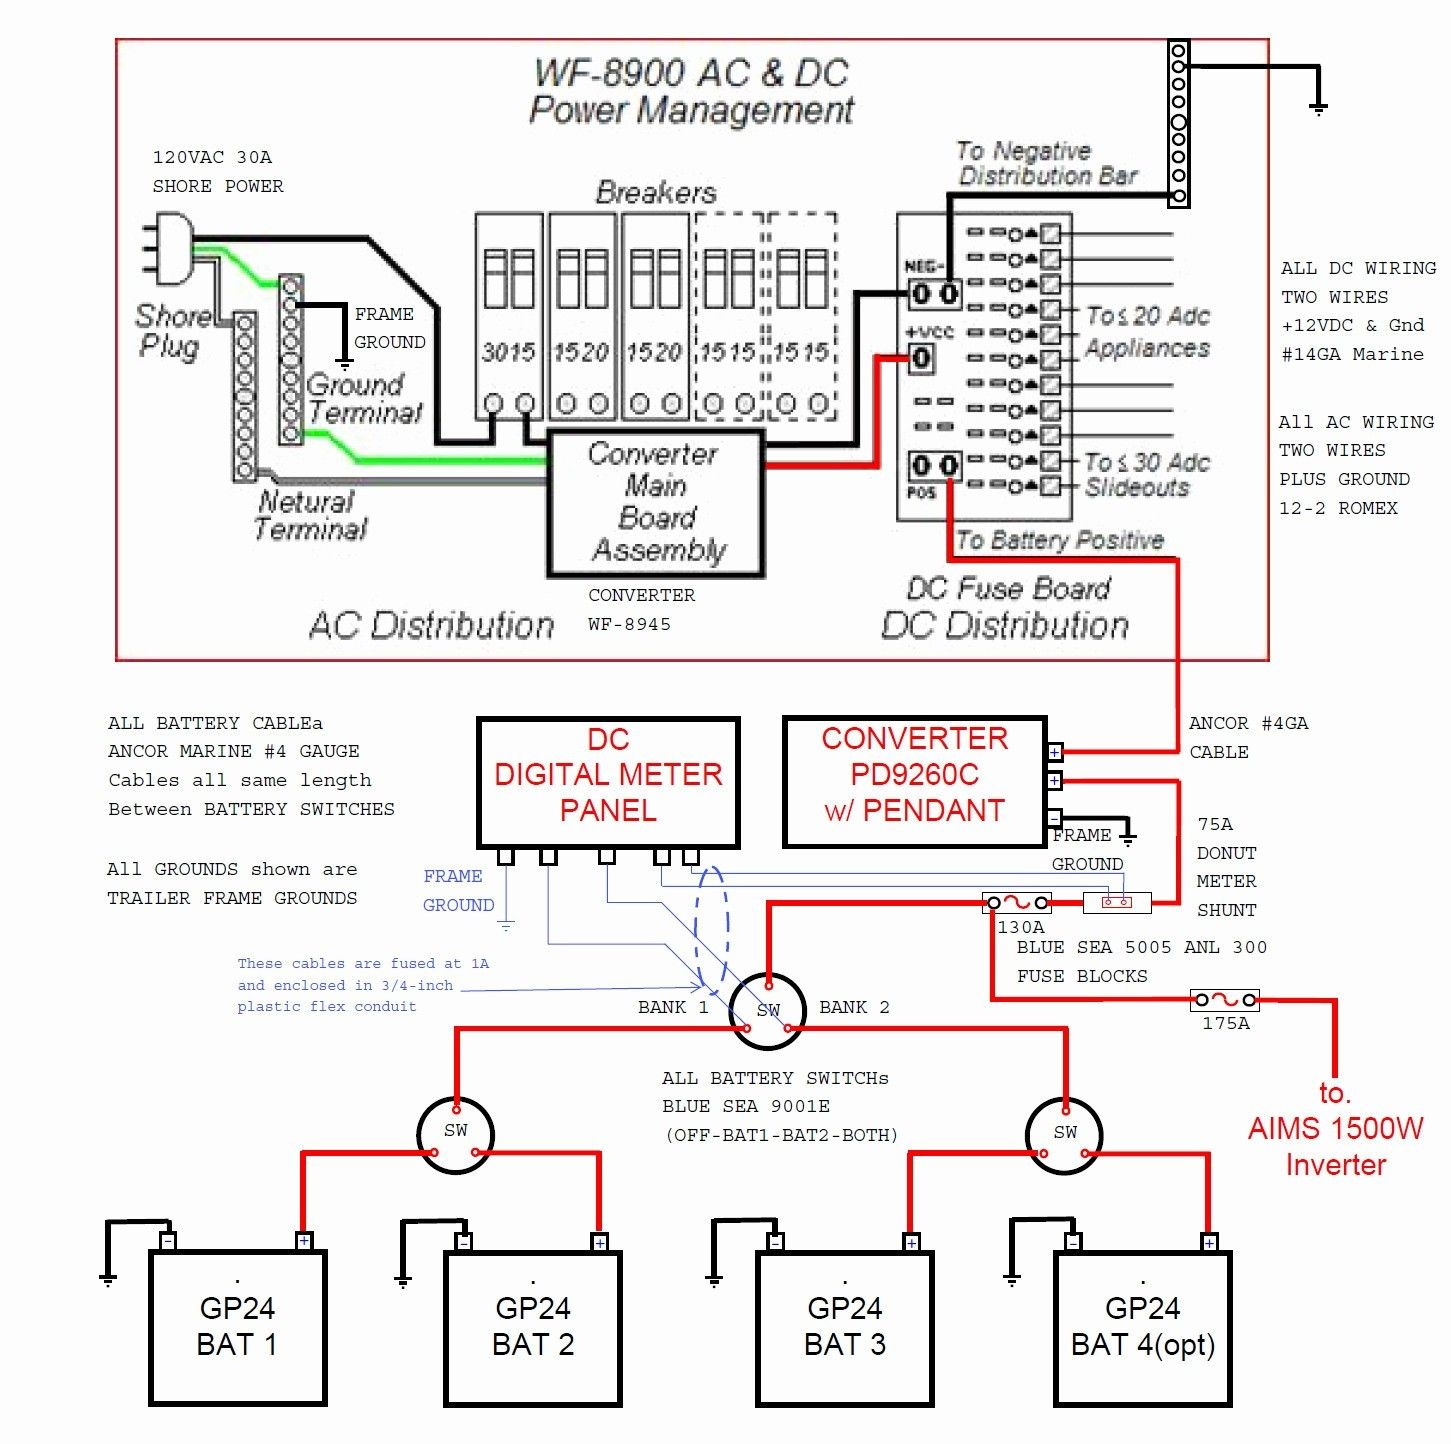 30 amp rv plug wiring diagram inspirational wiring diagram for rv wiring diagram cer plug rv battery [ 1451 x 1444 Pixel ]